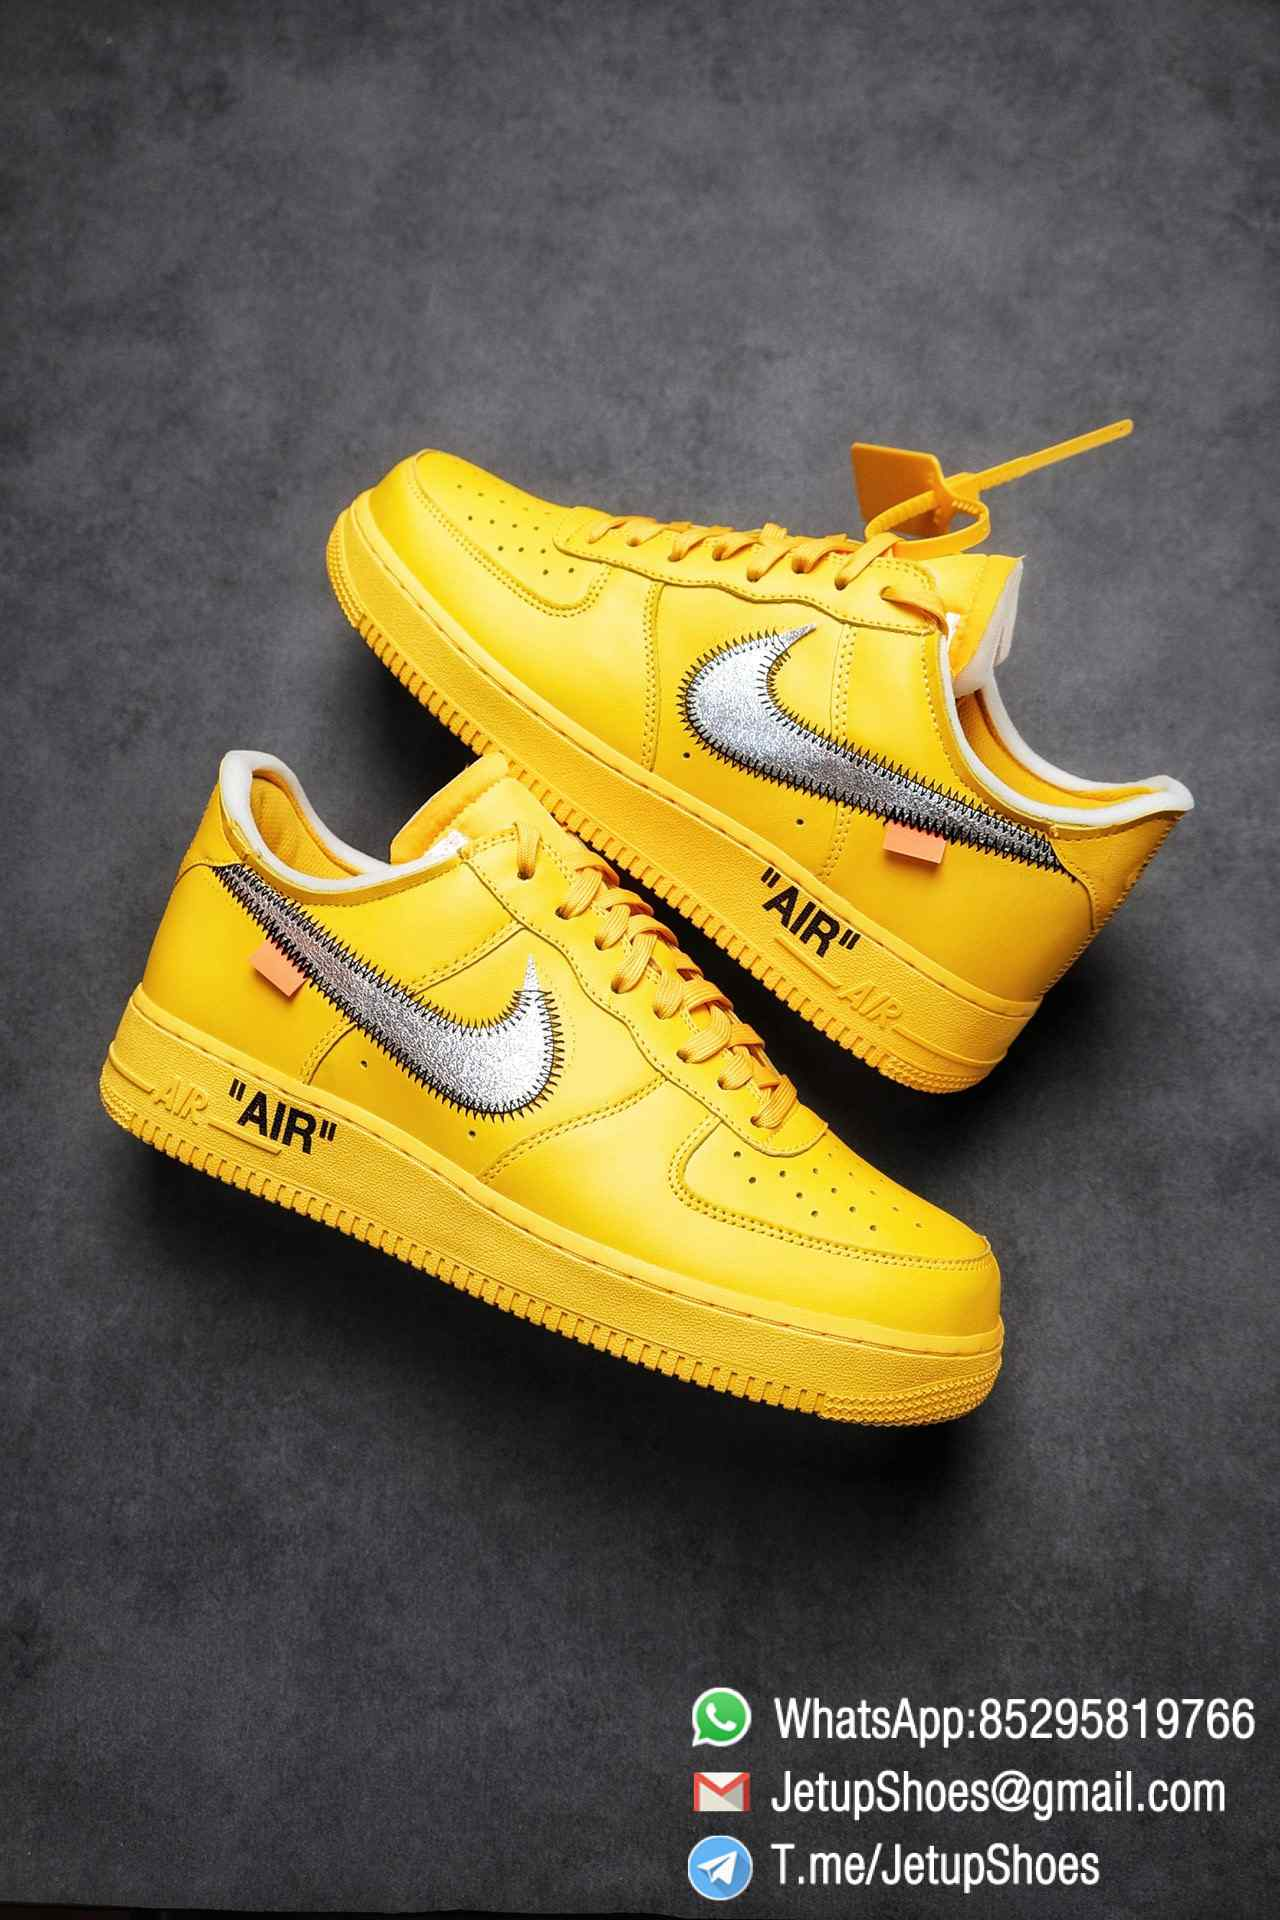 Best Replica Sneakers Off-White x Air Force 1 Low 'University Gold' SKU DD1876-700 Top Quality Basketball Shoes